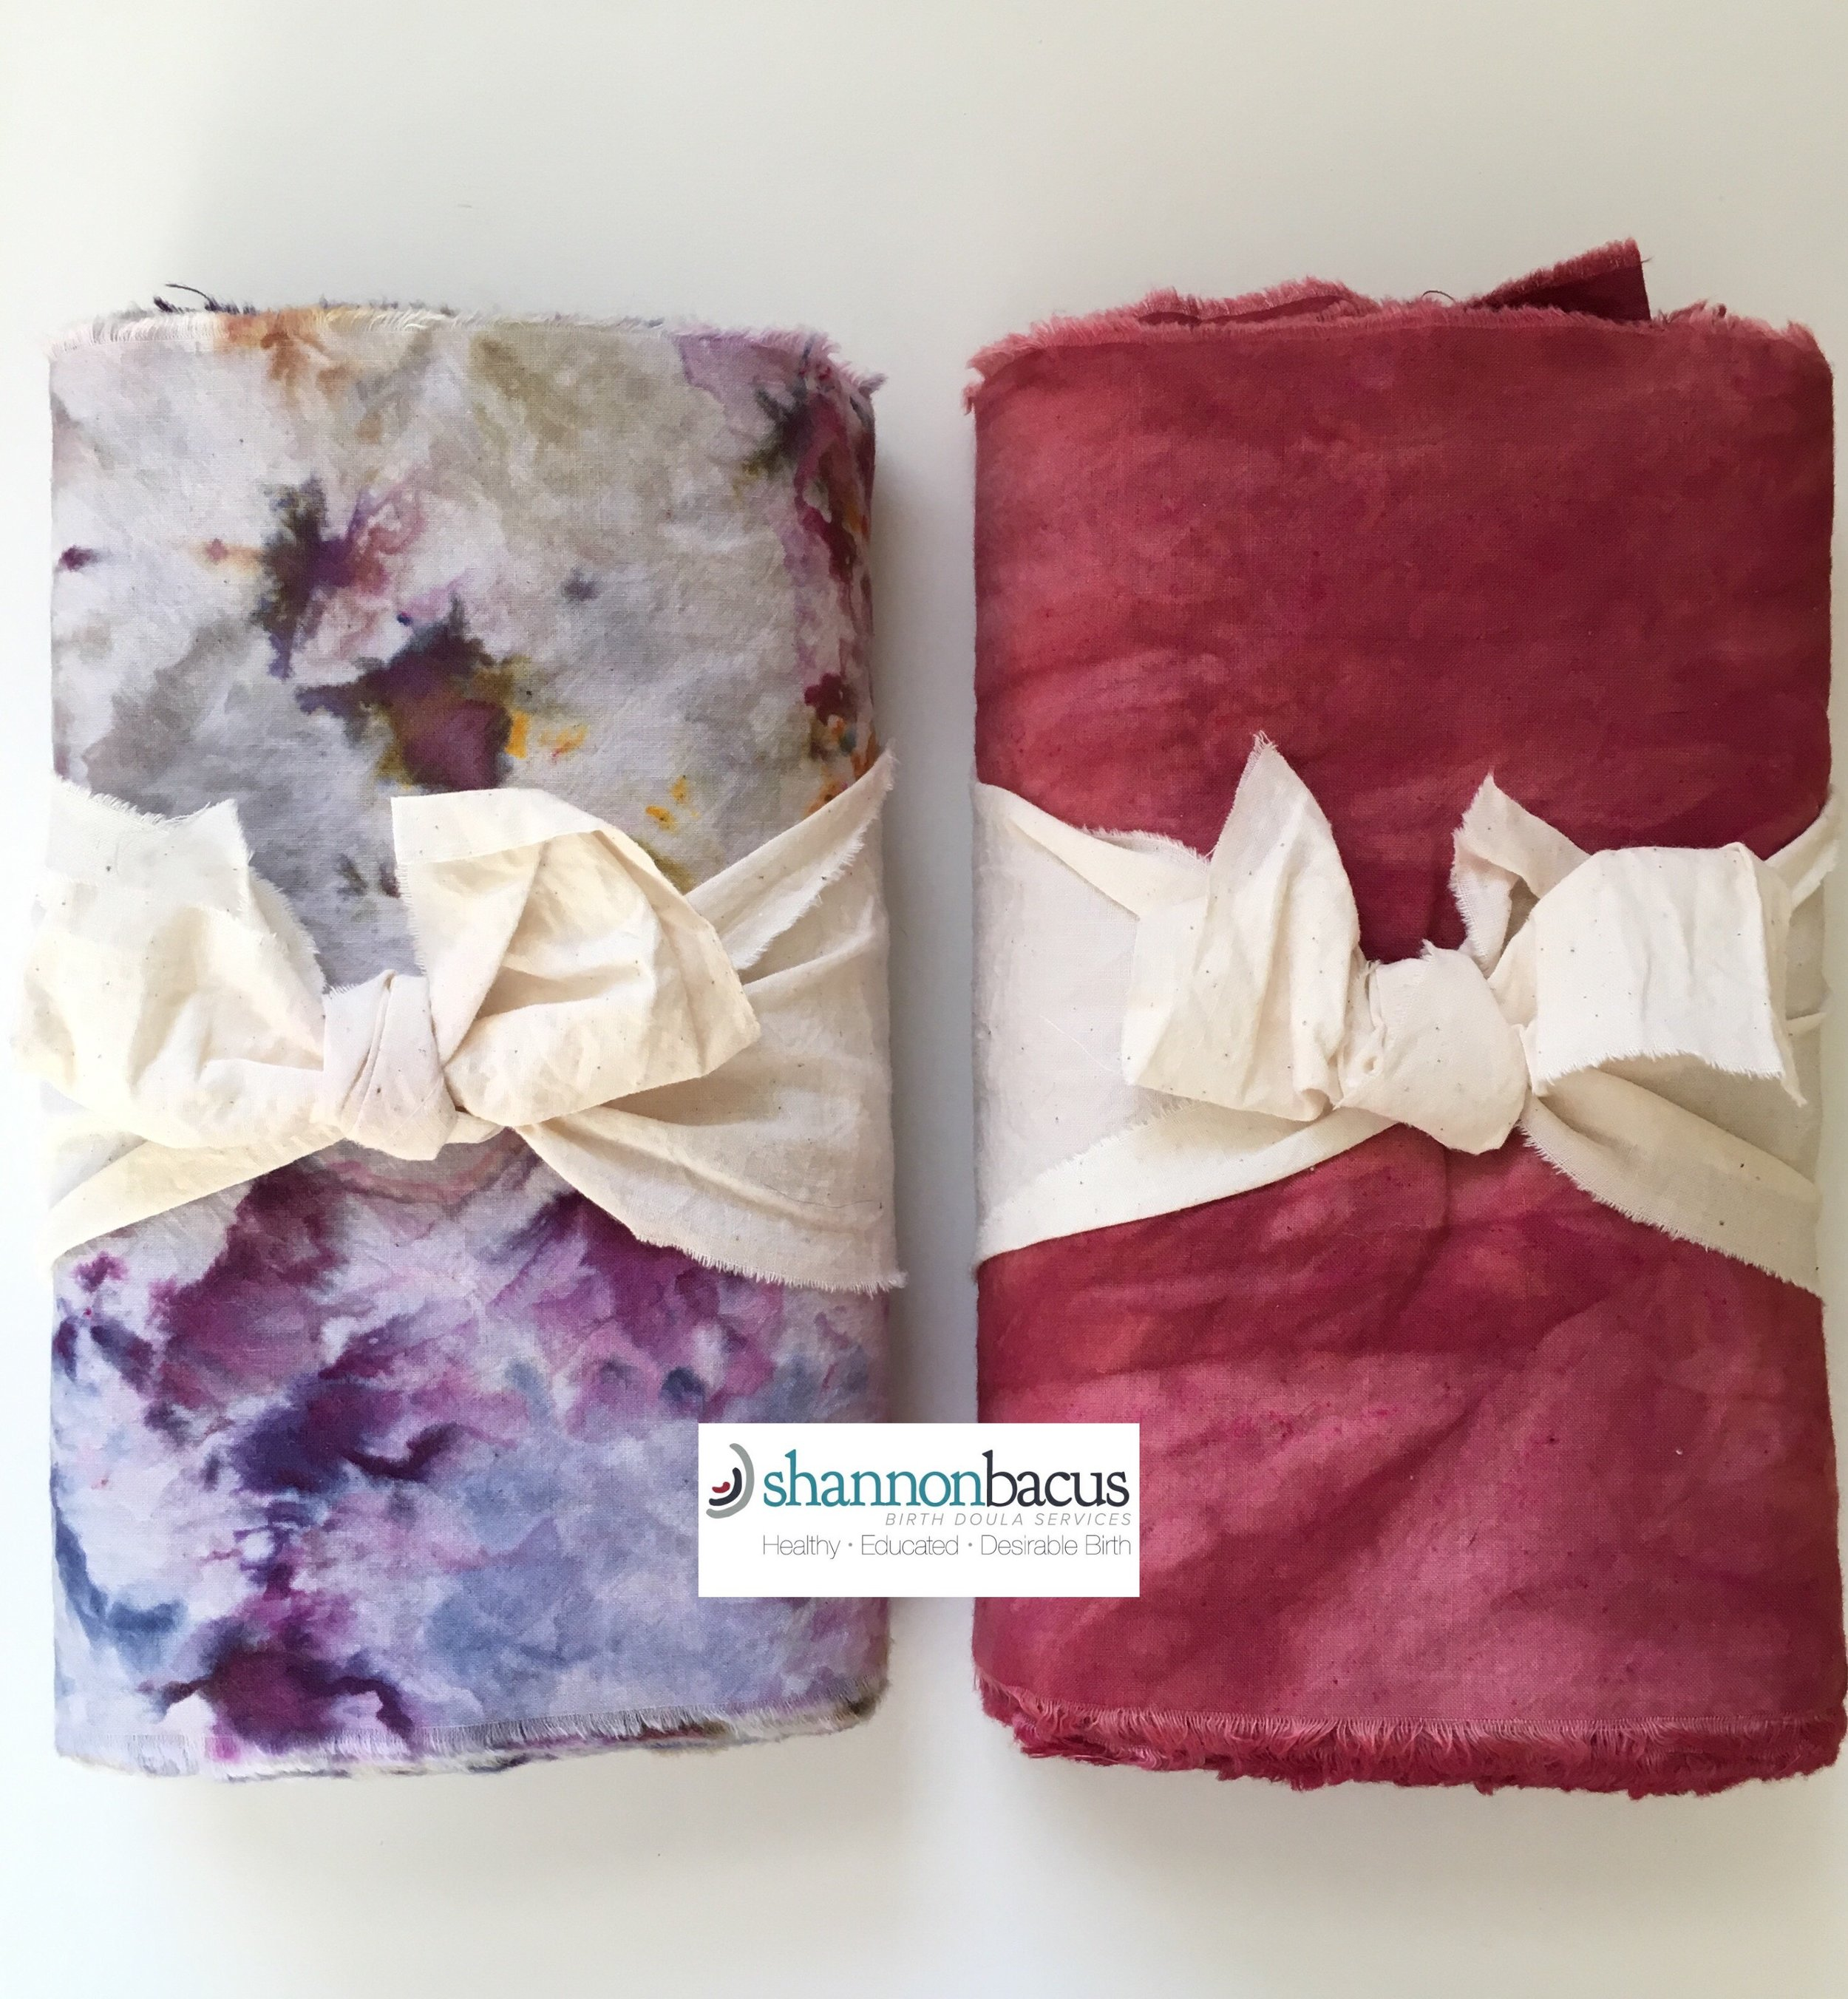 Your Choice of Color! - Choose from Garden Twist or RosewoodDon't want to purchase a Belly Binding Session, but want to purchase a bind! No problem. Pick one up in my store!